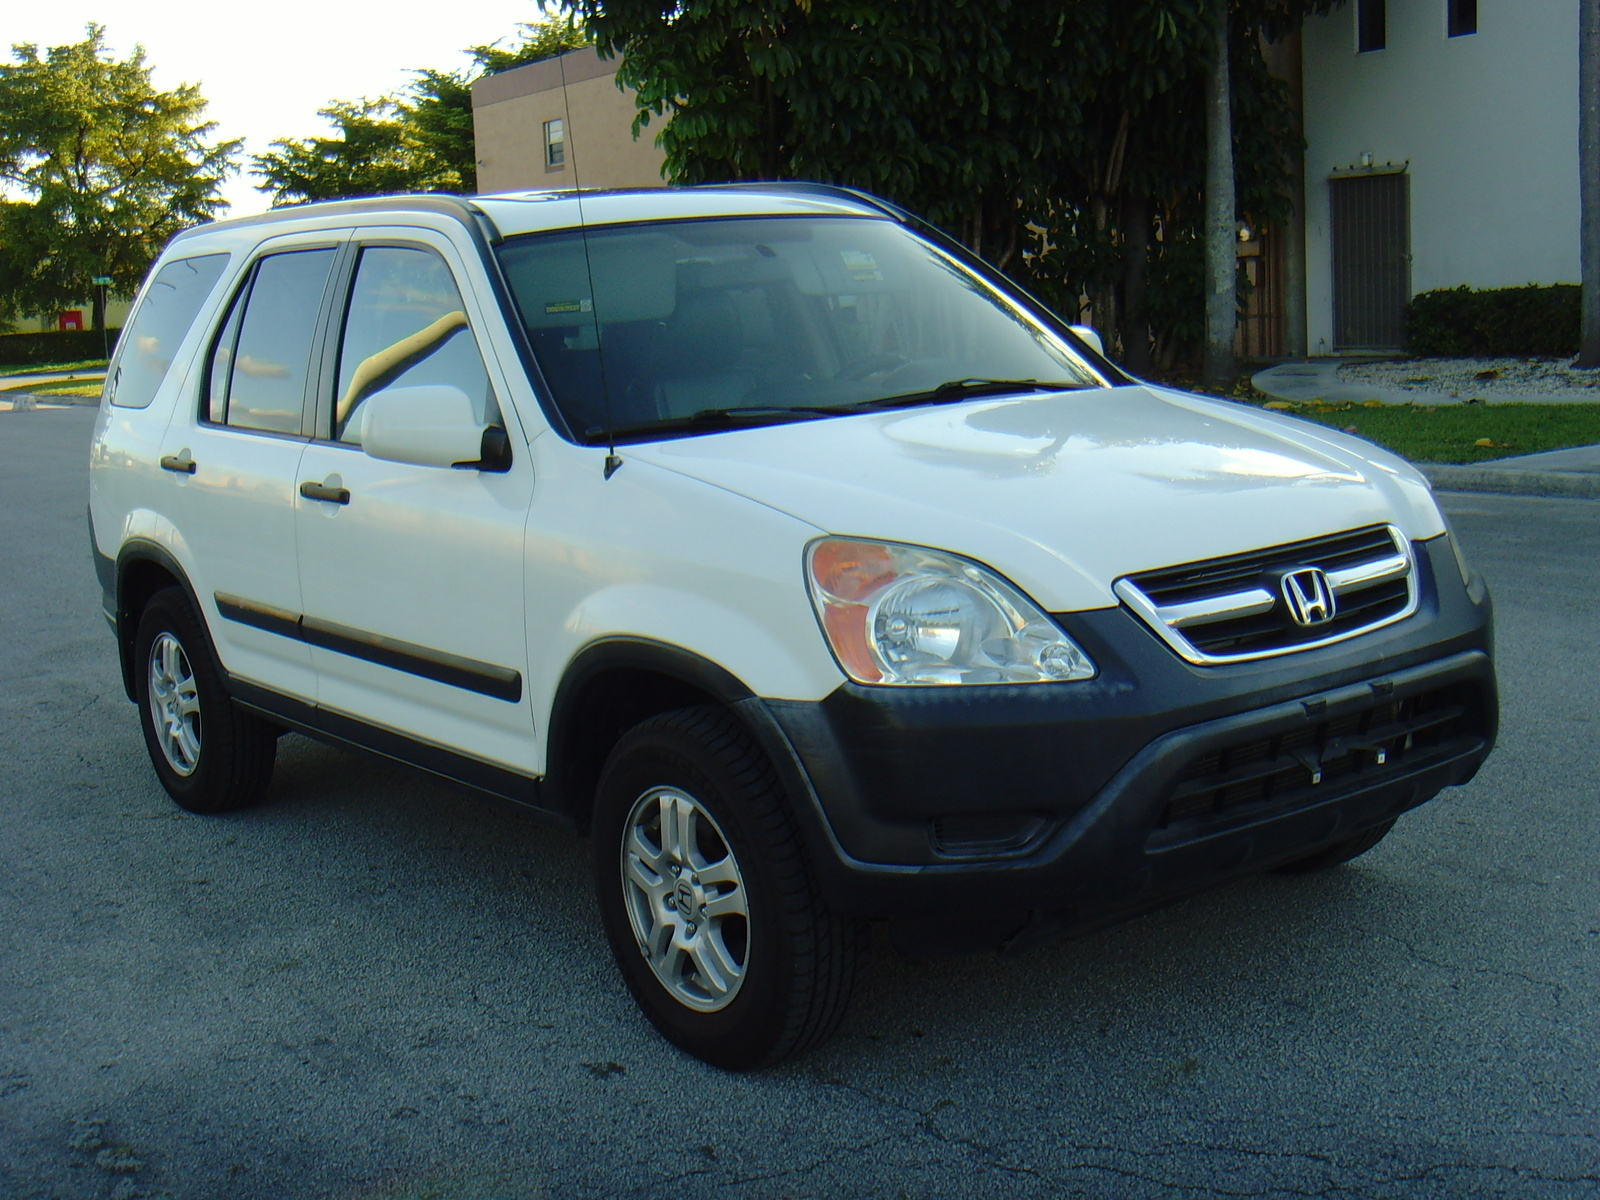 Photo 70 together with 2015 honda crv likewise Suspension Honda Crv moreover 2015 honda hrv specs furthermore Encyclopedia Hoonatica Factory Side Pipes. on 2015 honda cr v awd